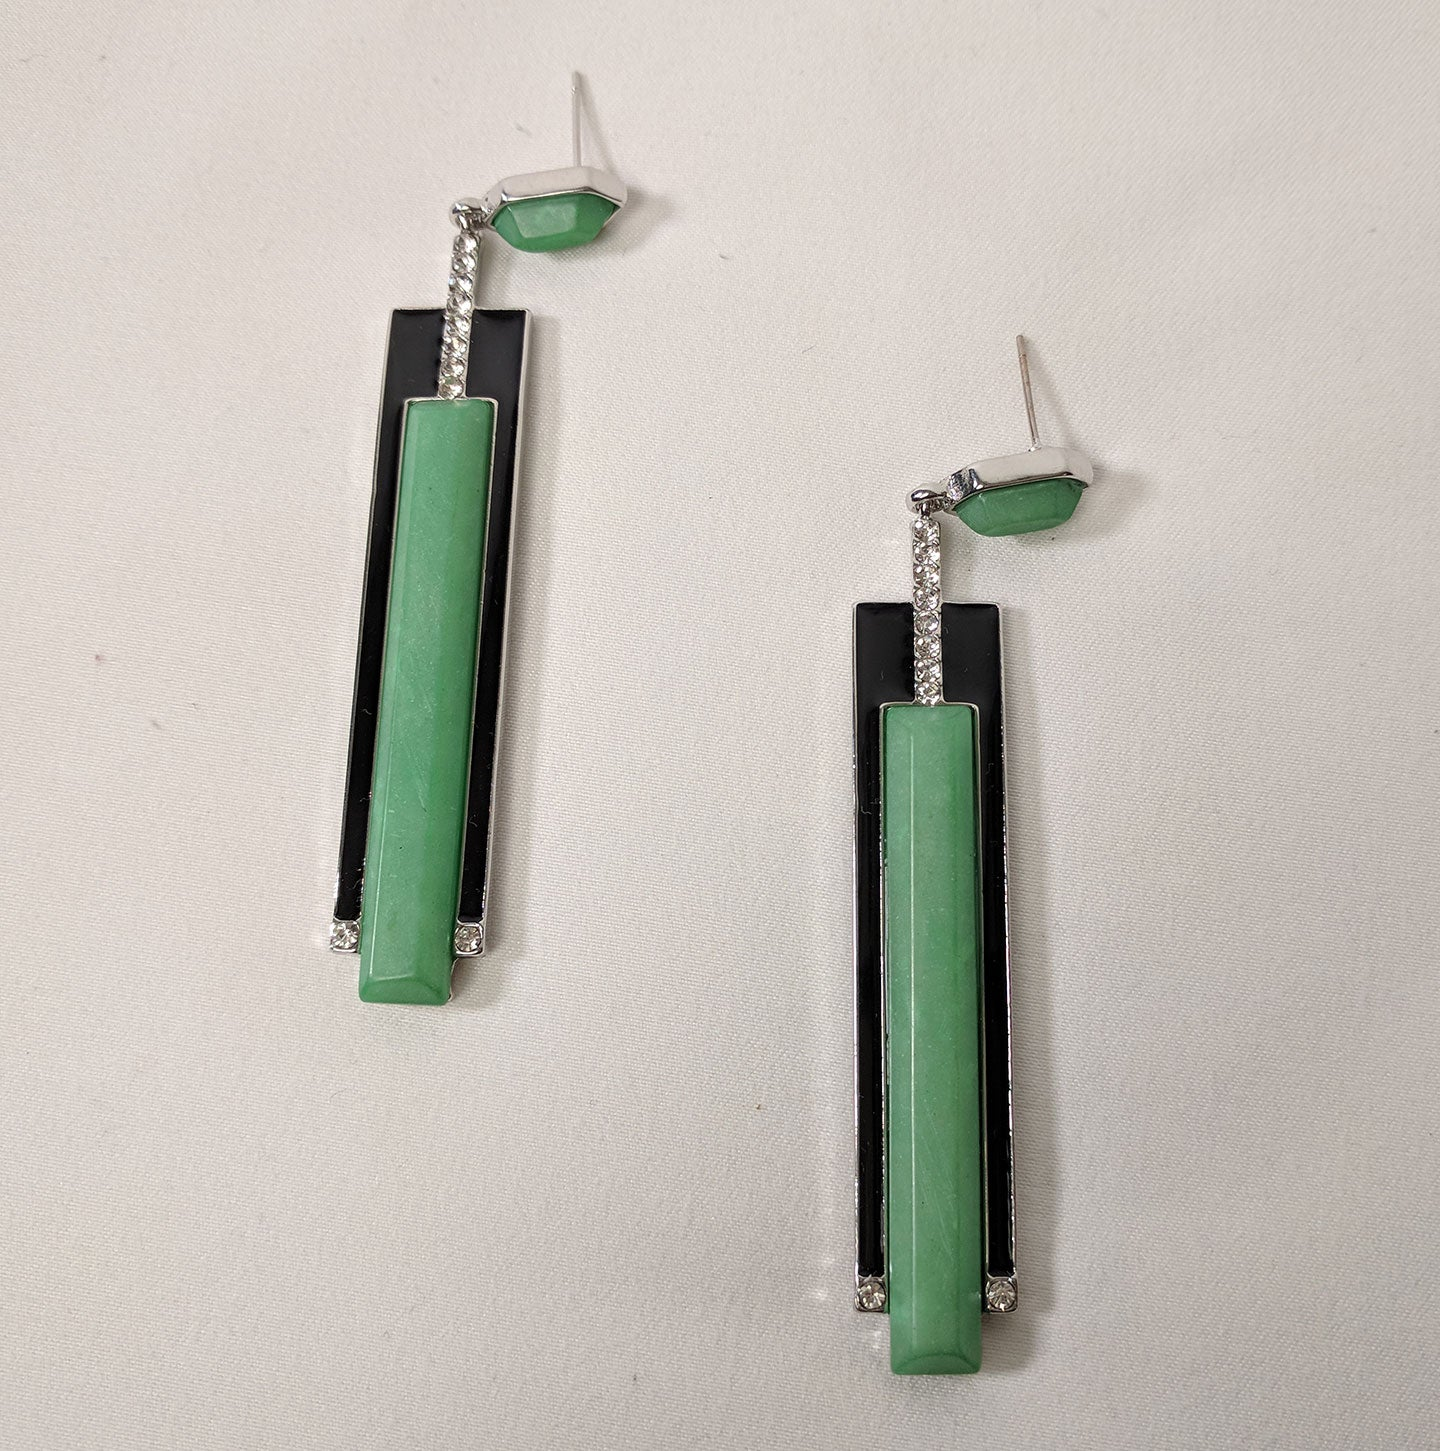 """Jacqueline"" Streamline Art Deco Style Earrings"